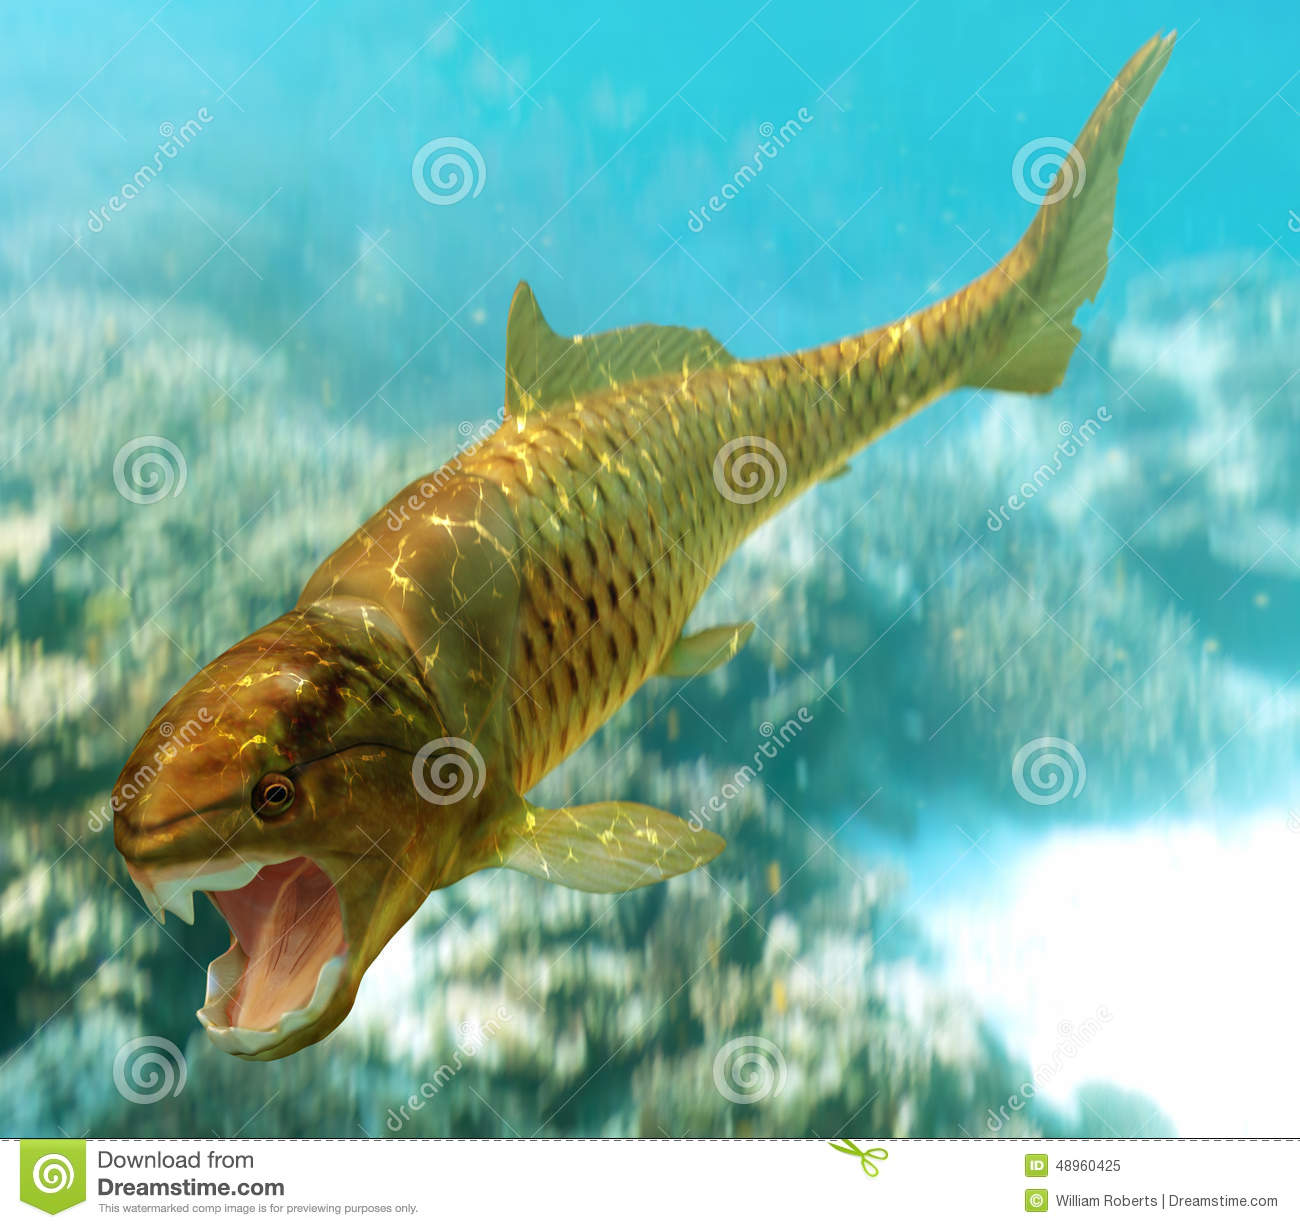 Dunkleosteus stock illustration image 48960425 for Dream of fish swimming